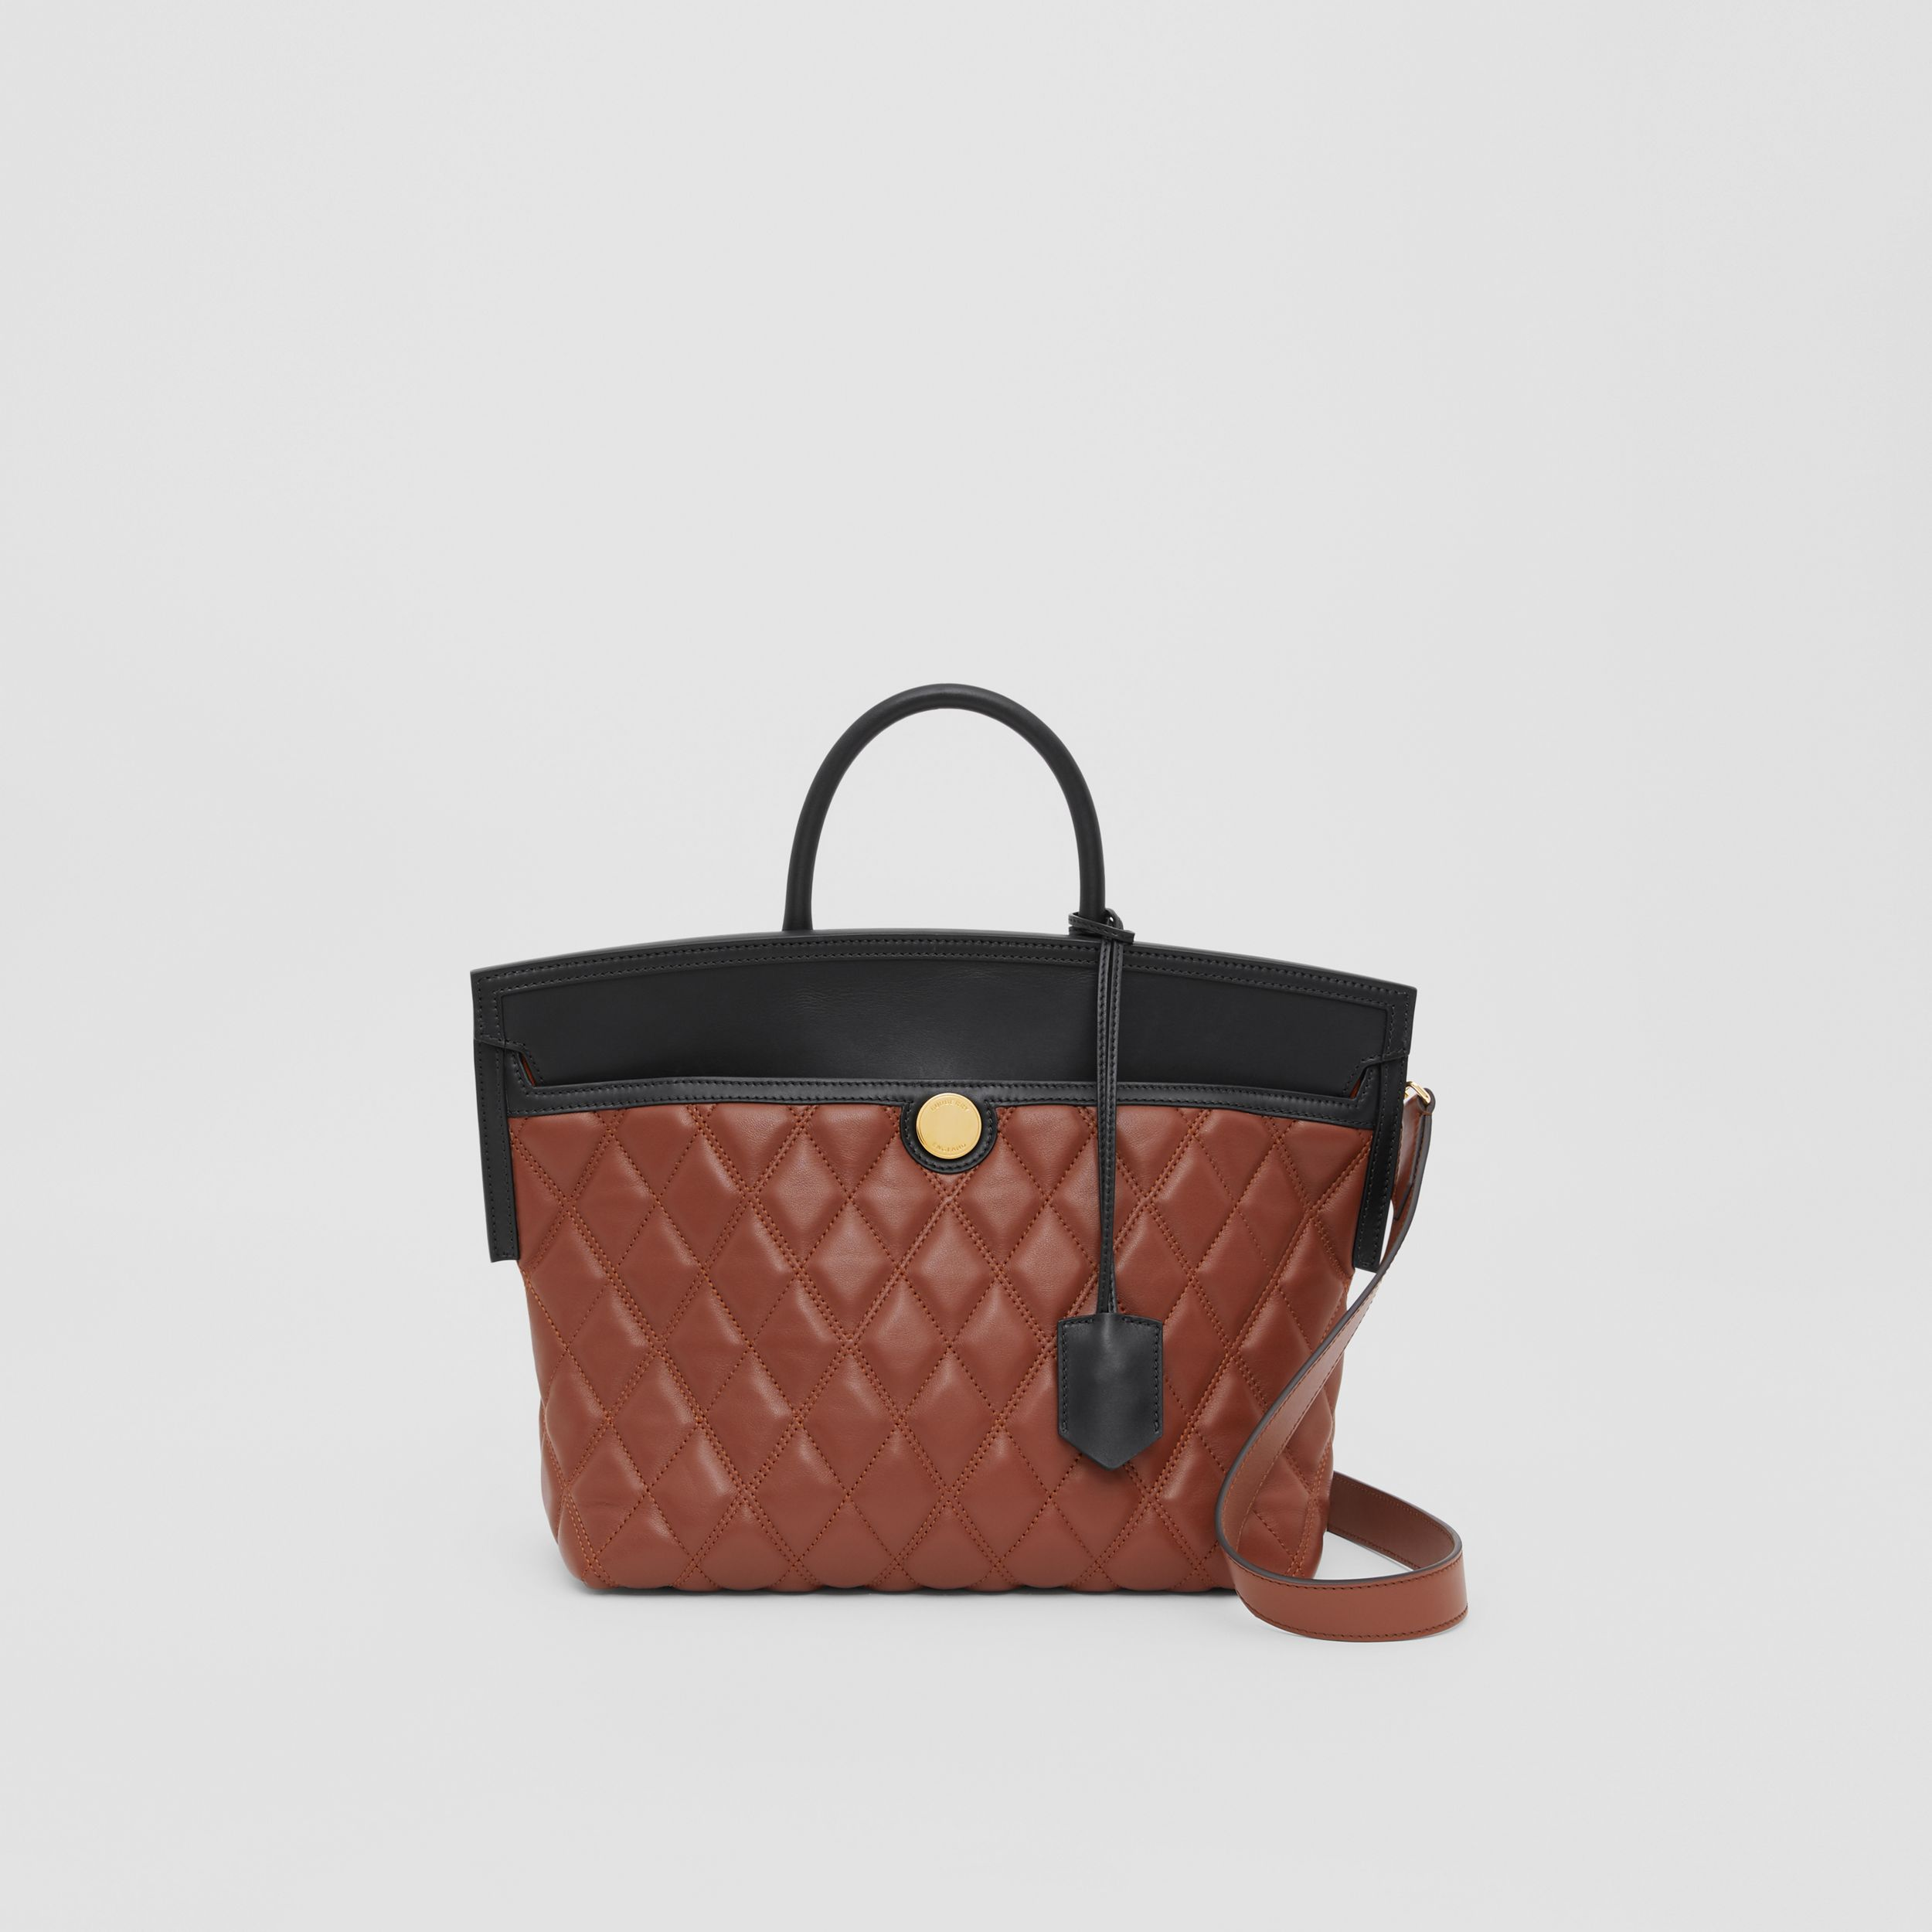 Small Quilted Lambskin Society Top Handle Bag in Tan - Women | Burberry Australia - 1